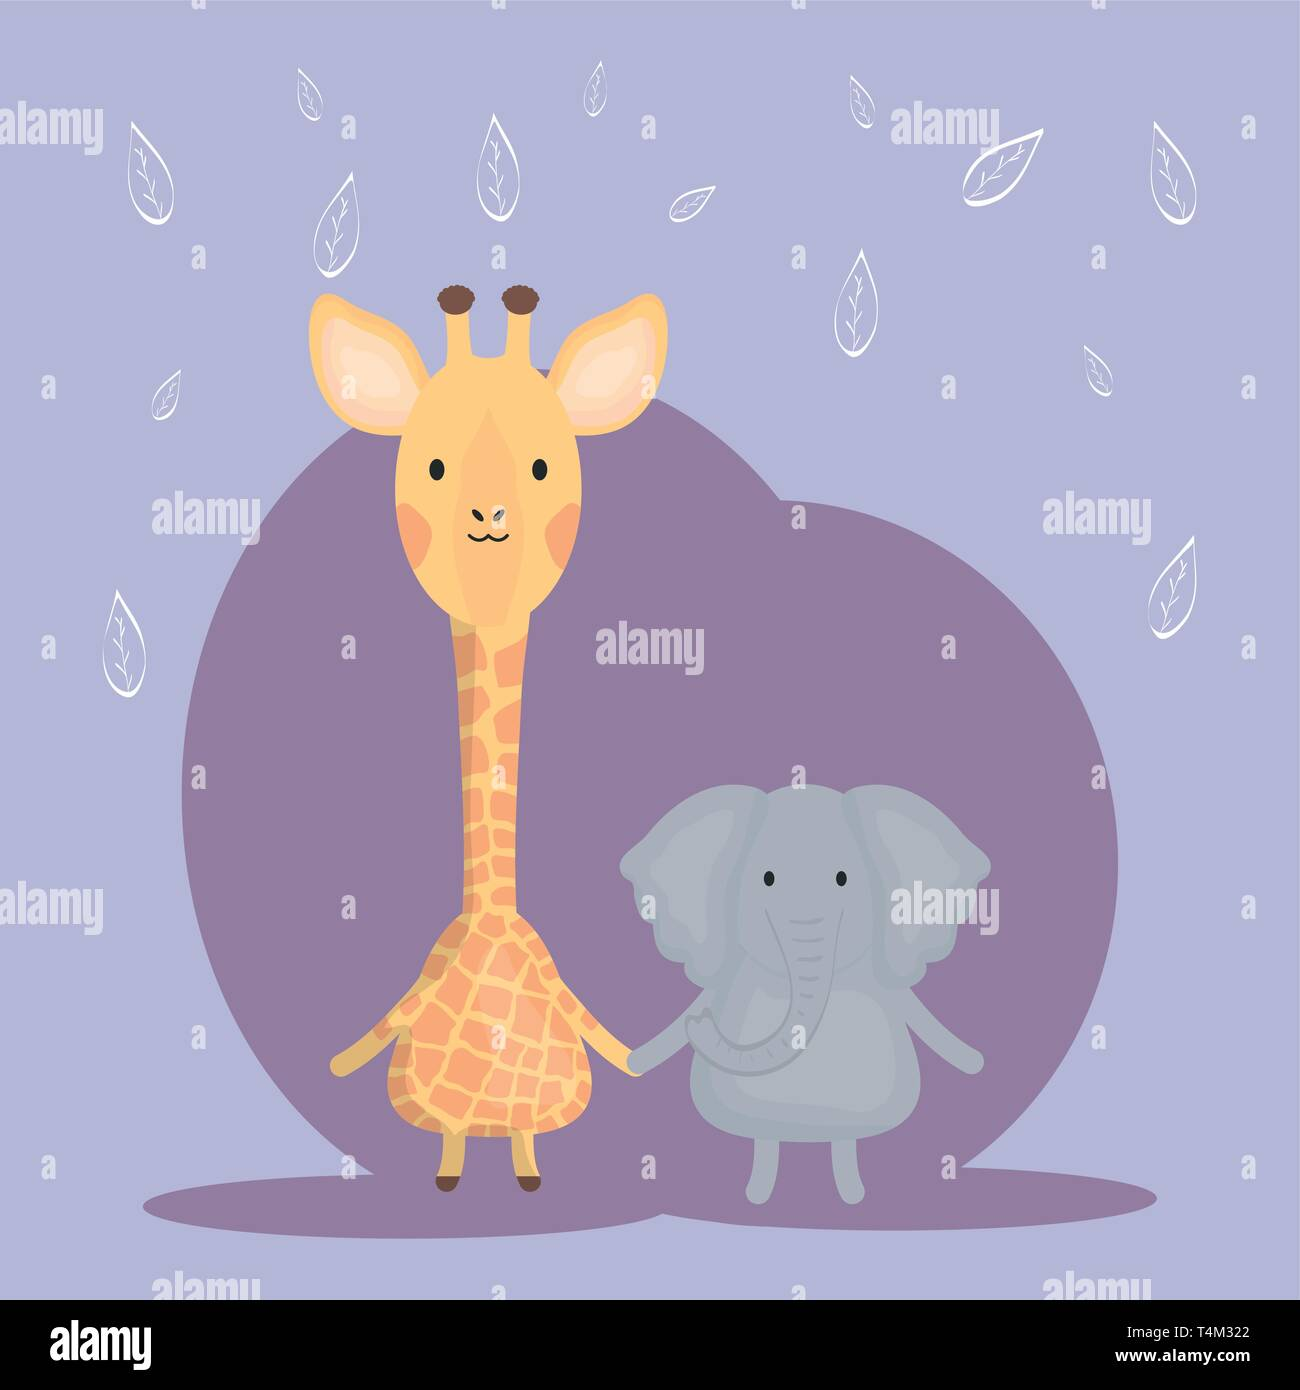 cute giraffe and elephant adorable characters vector illustration design Stock Vector